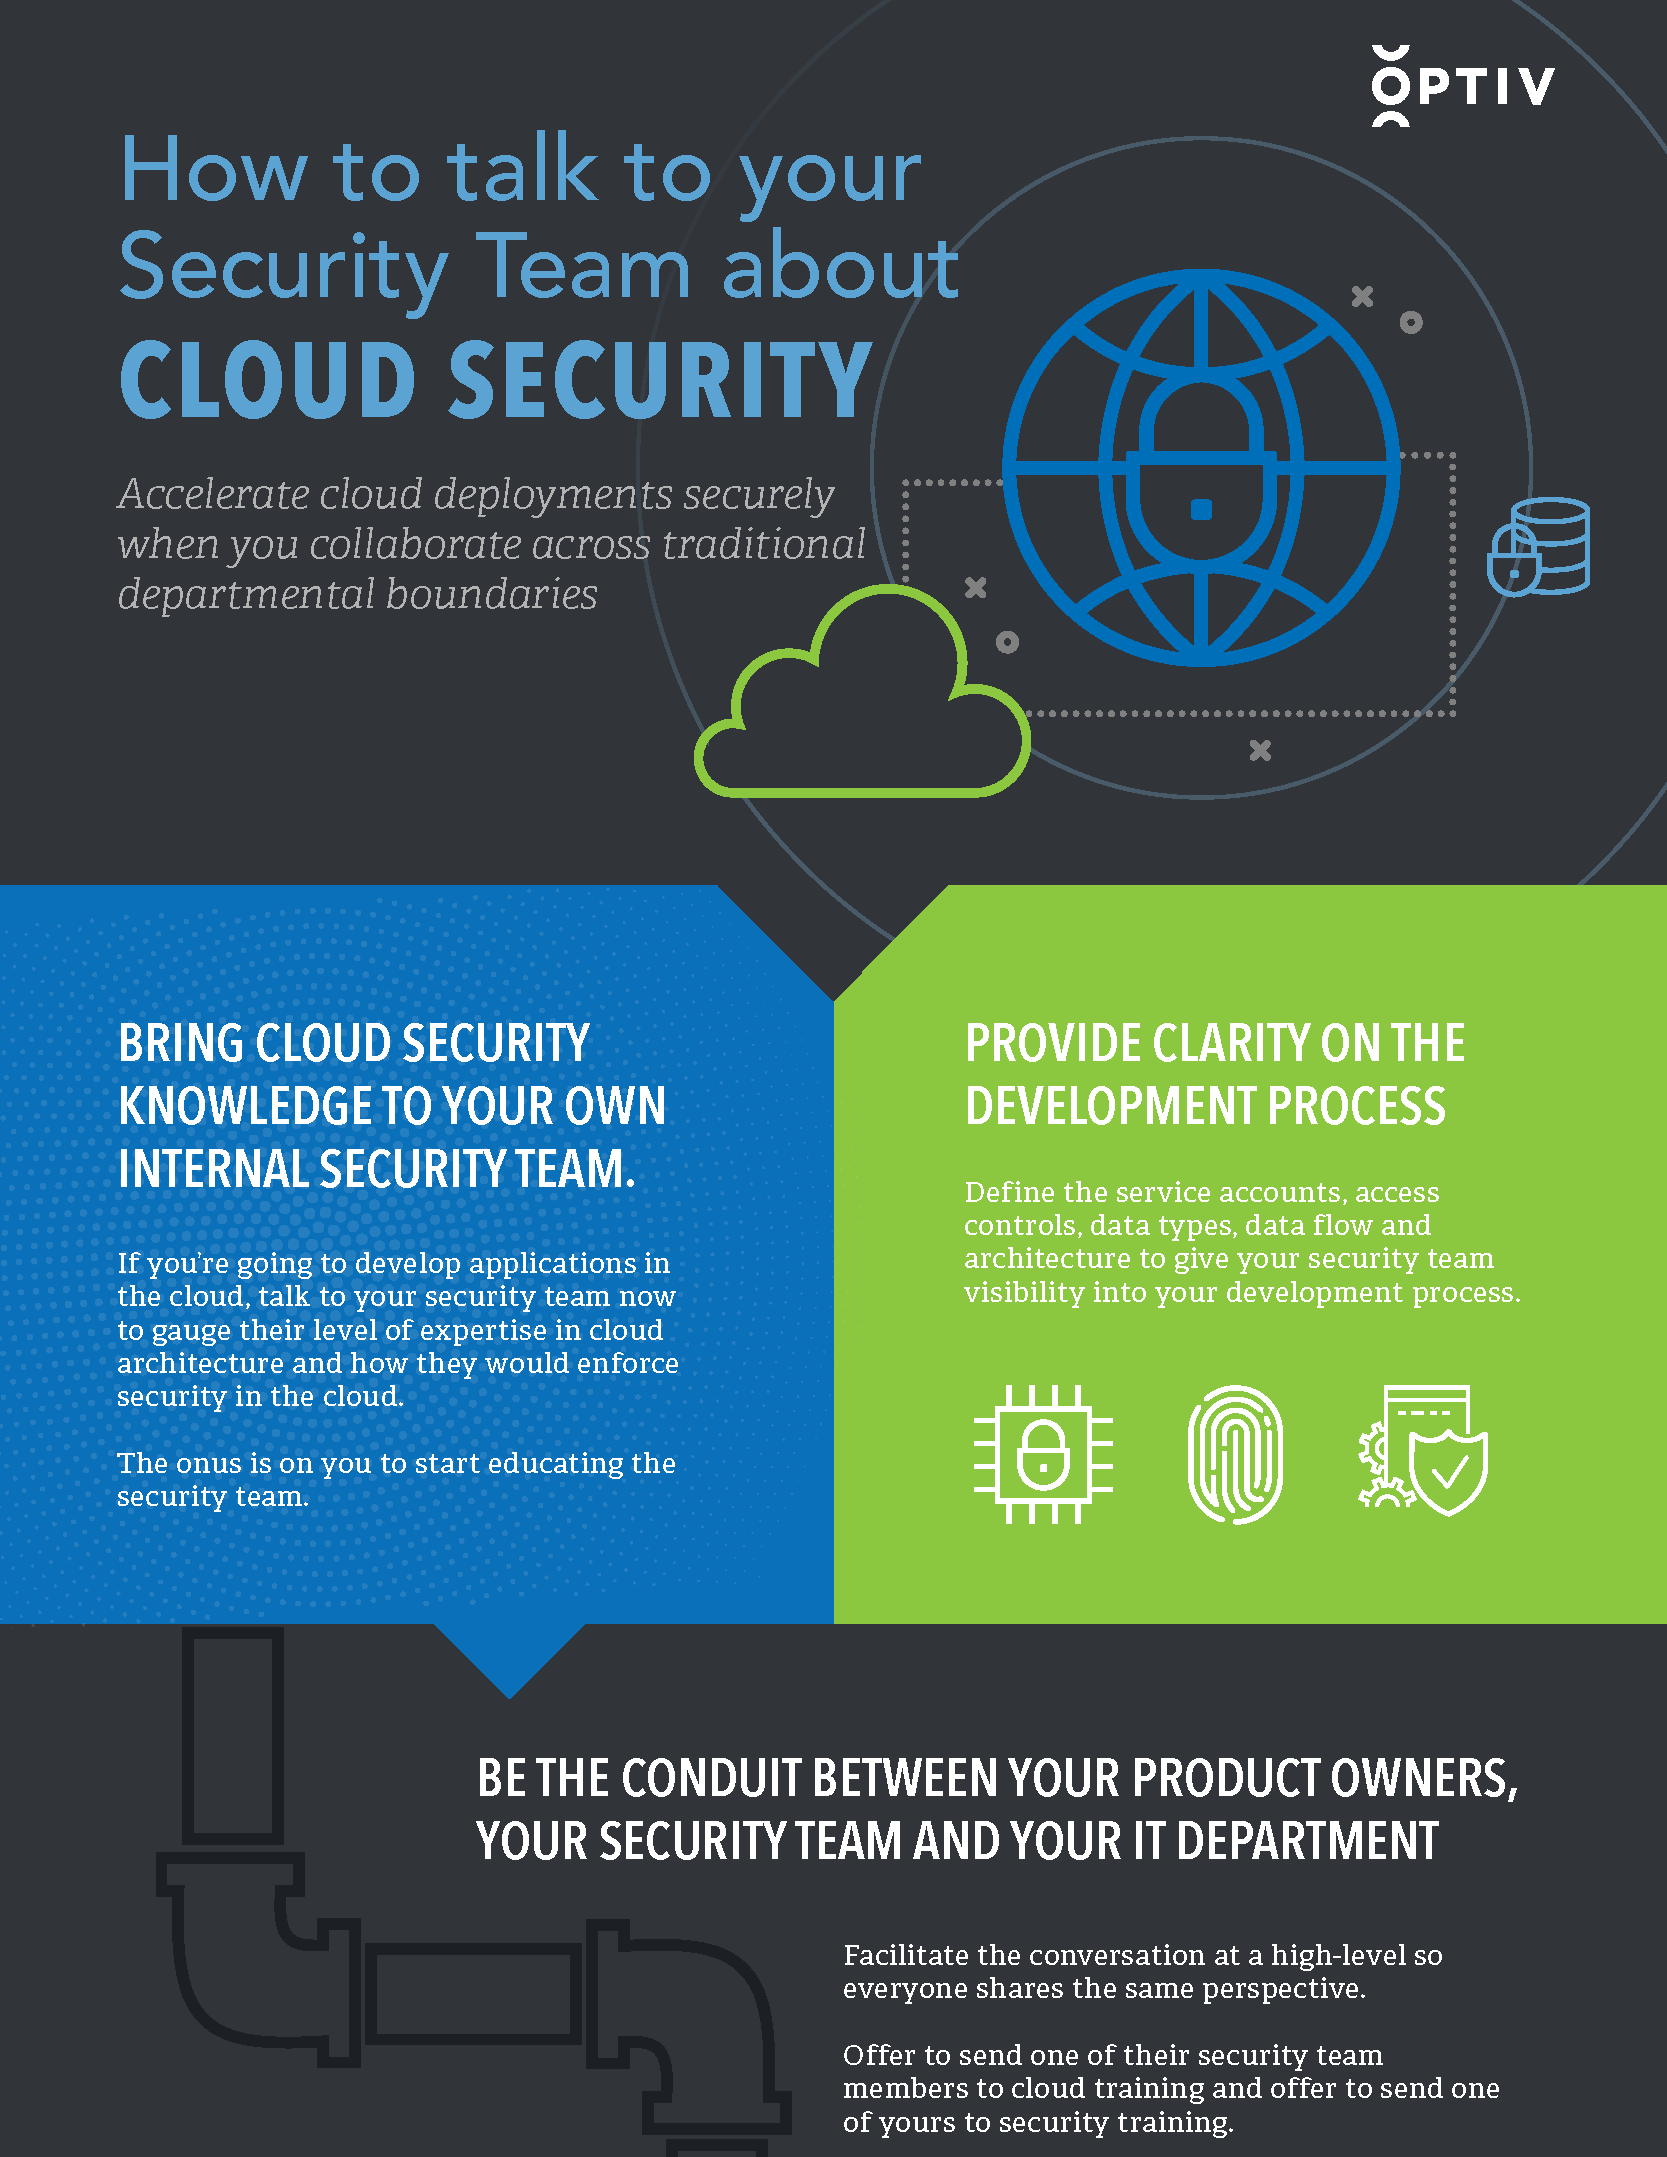 How to Talk to Your Security Team About Cloud Security